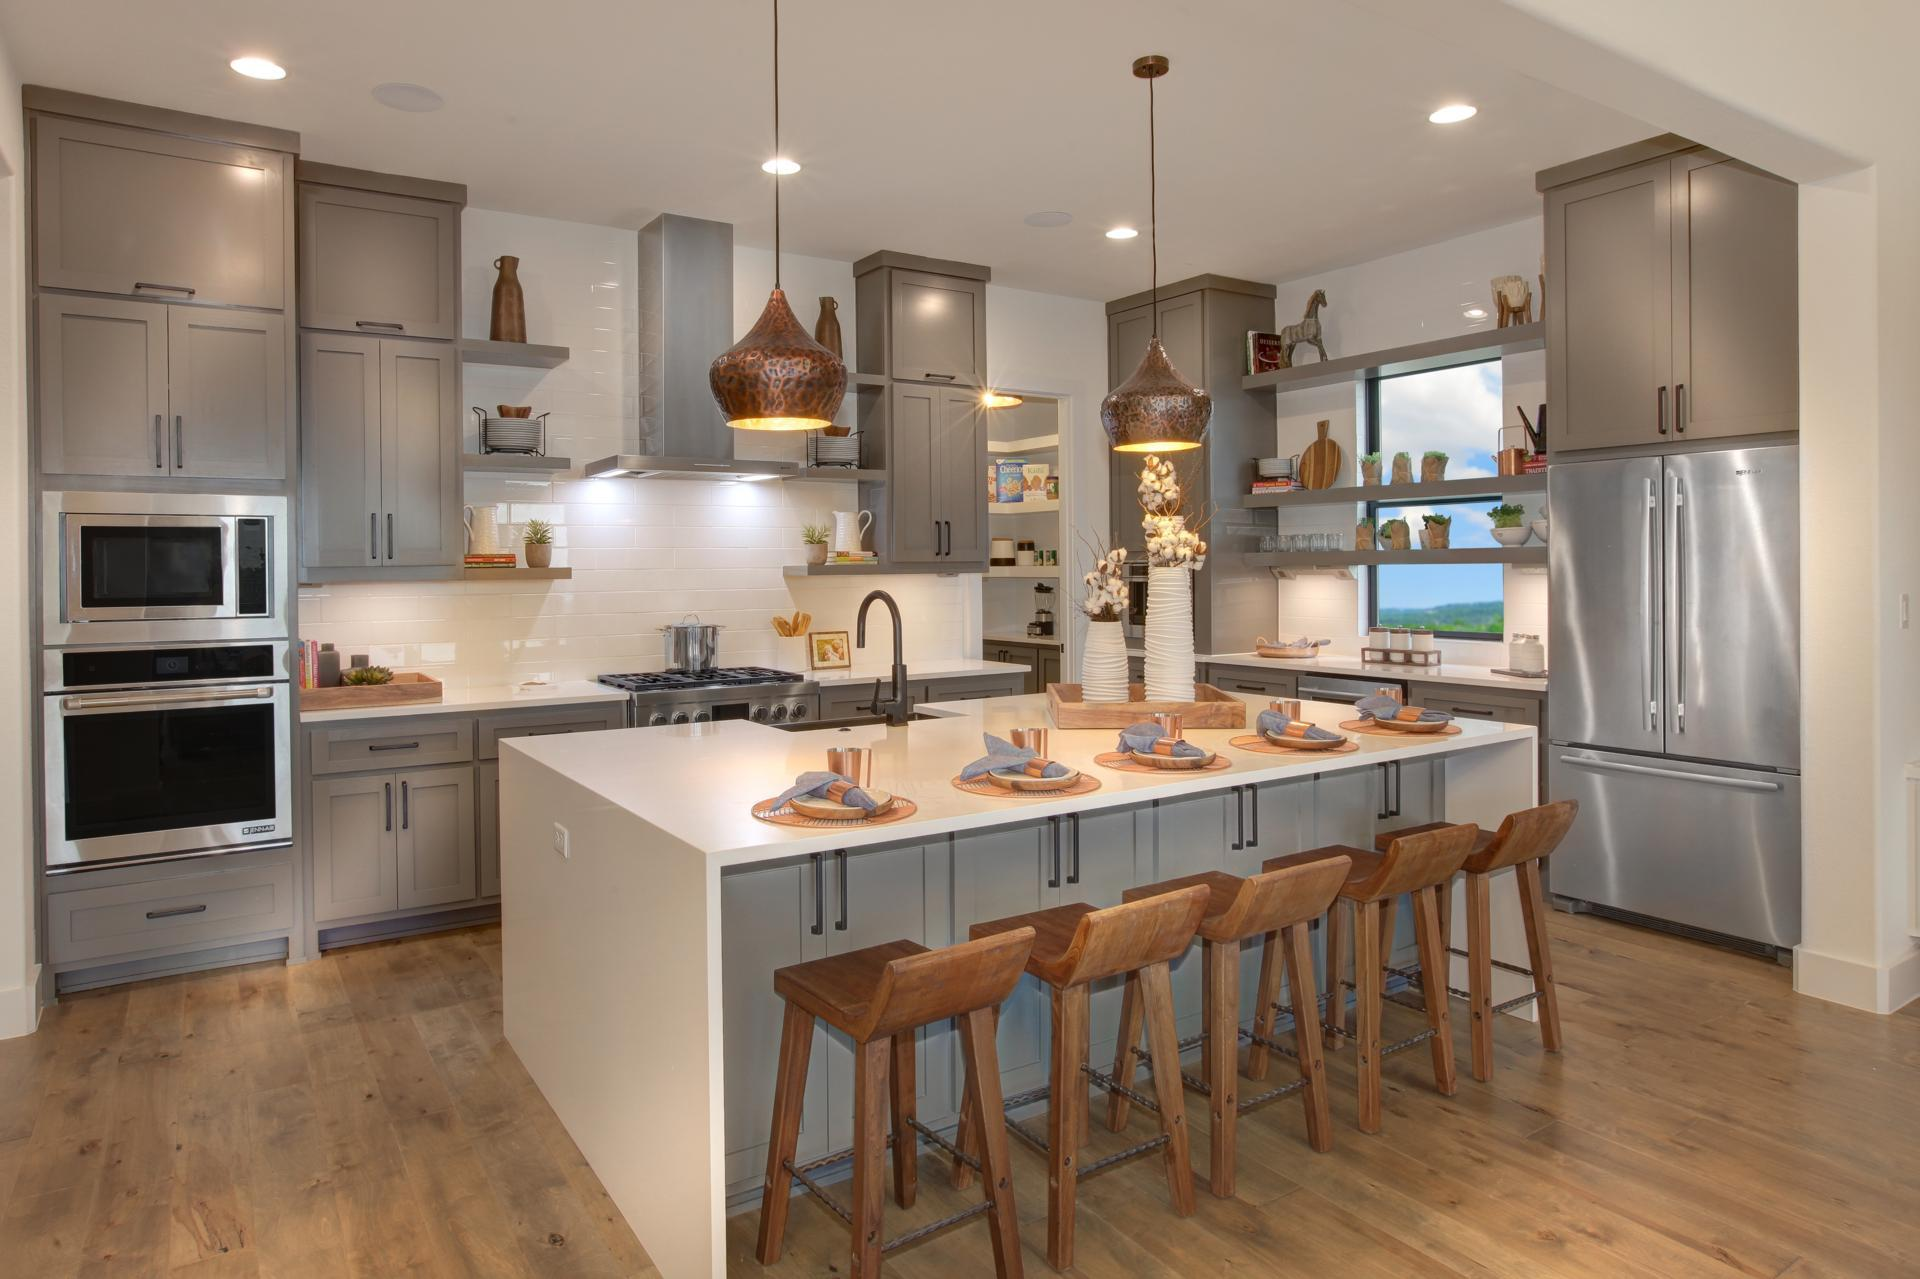 Kitchen featured in the Grantley By Drees Custom Homes in Houston, TX